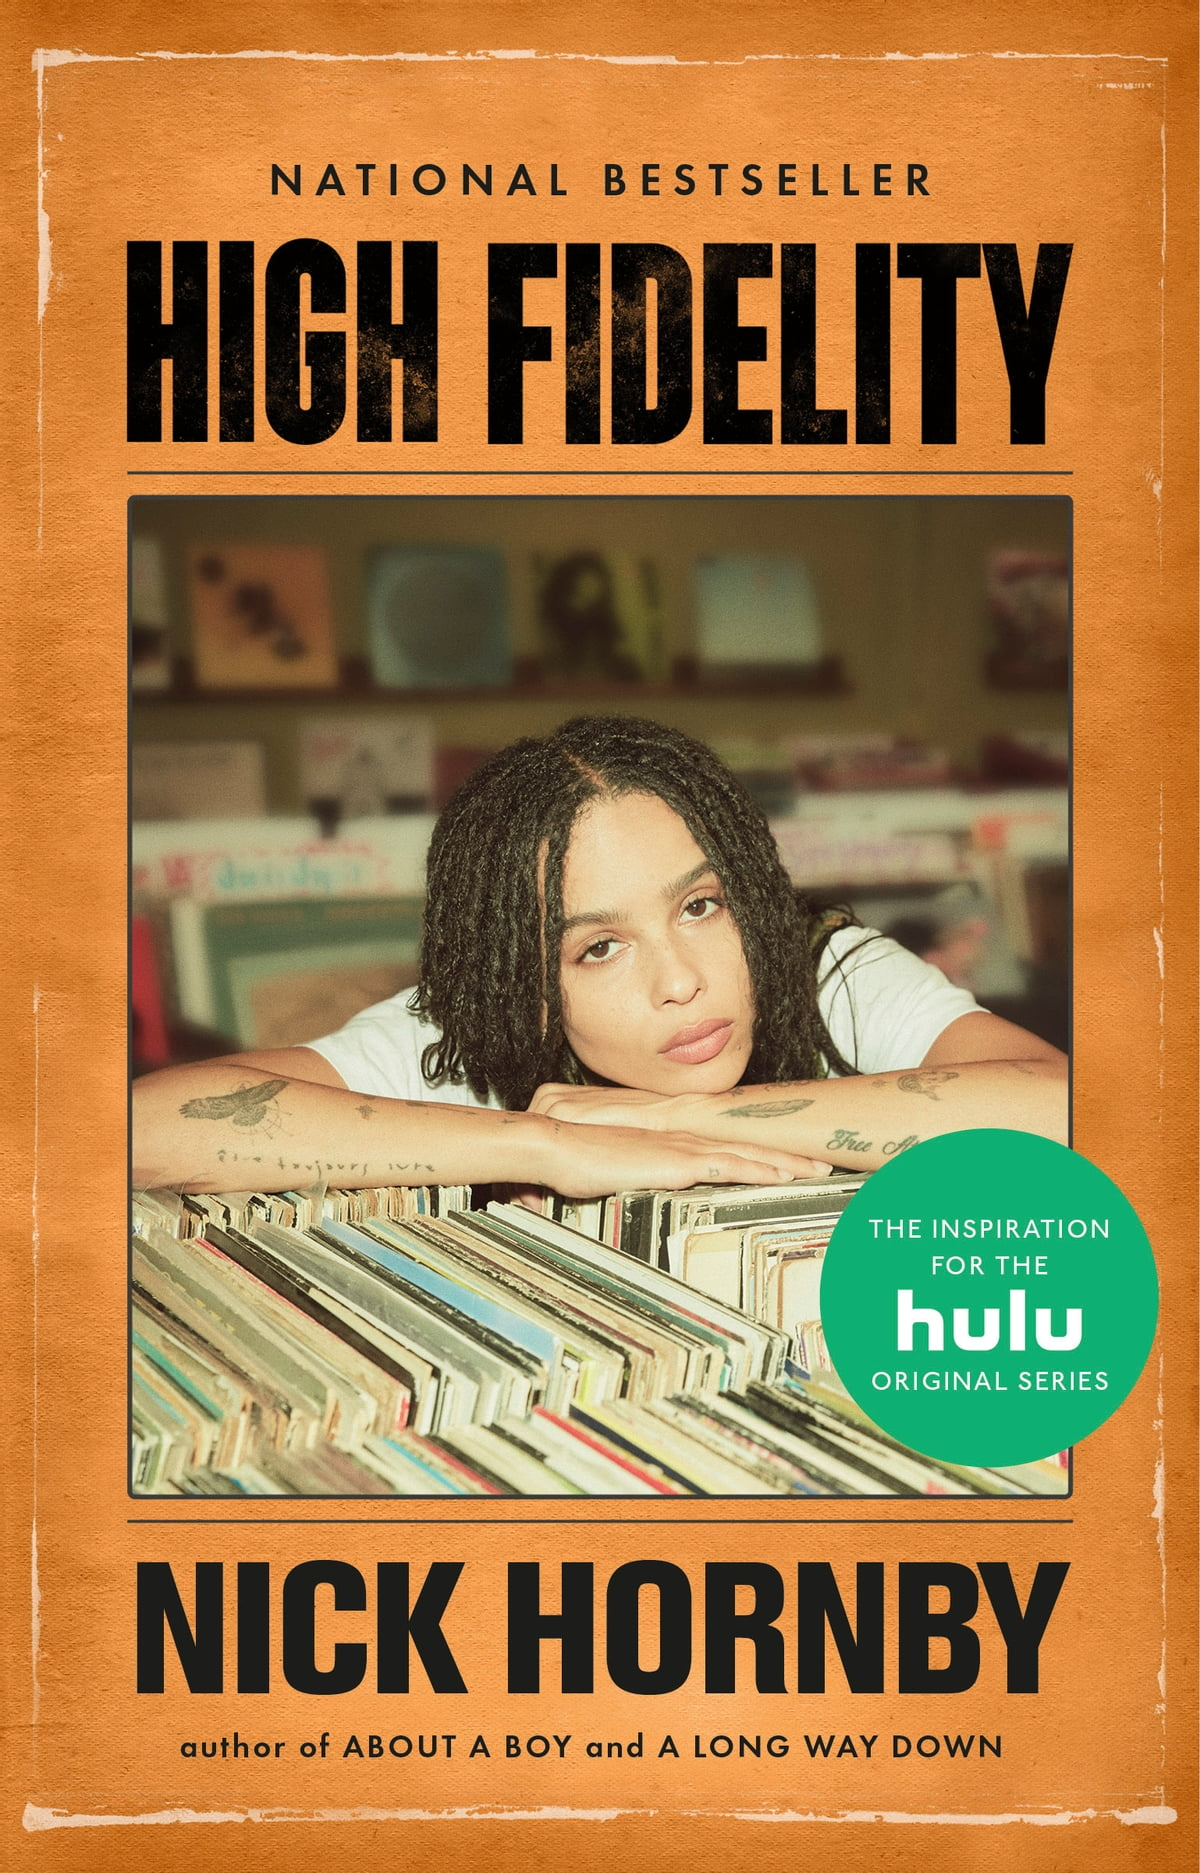 Download High Fidelity By Nick Hornby